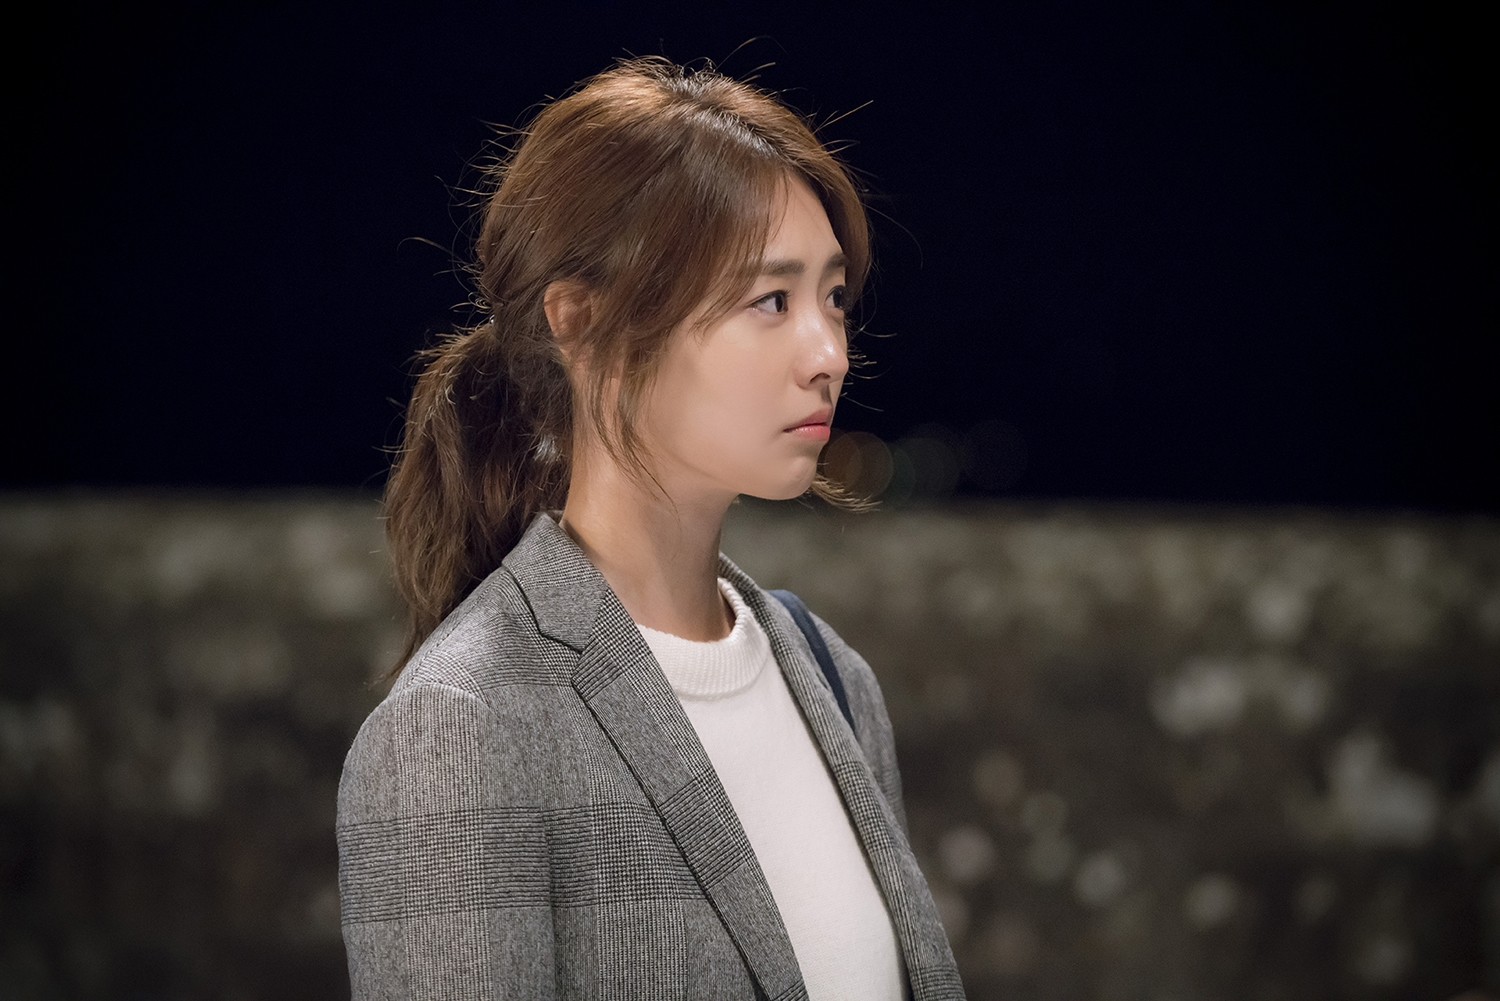 Lee Yeon Hee xinh đẹp trong drama mới 'The Package'